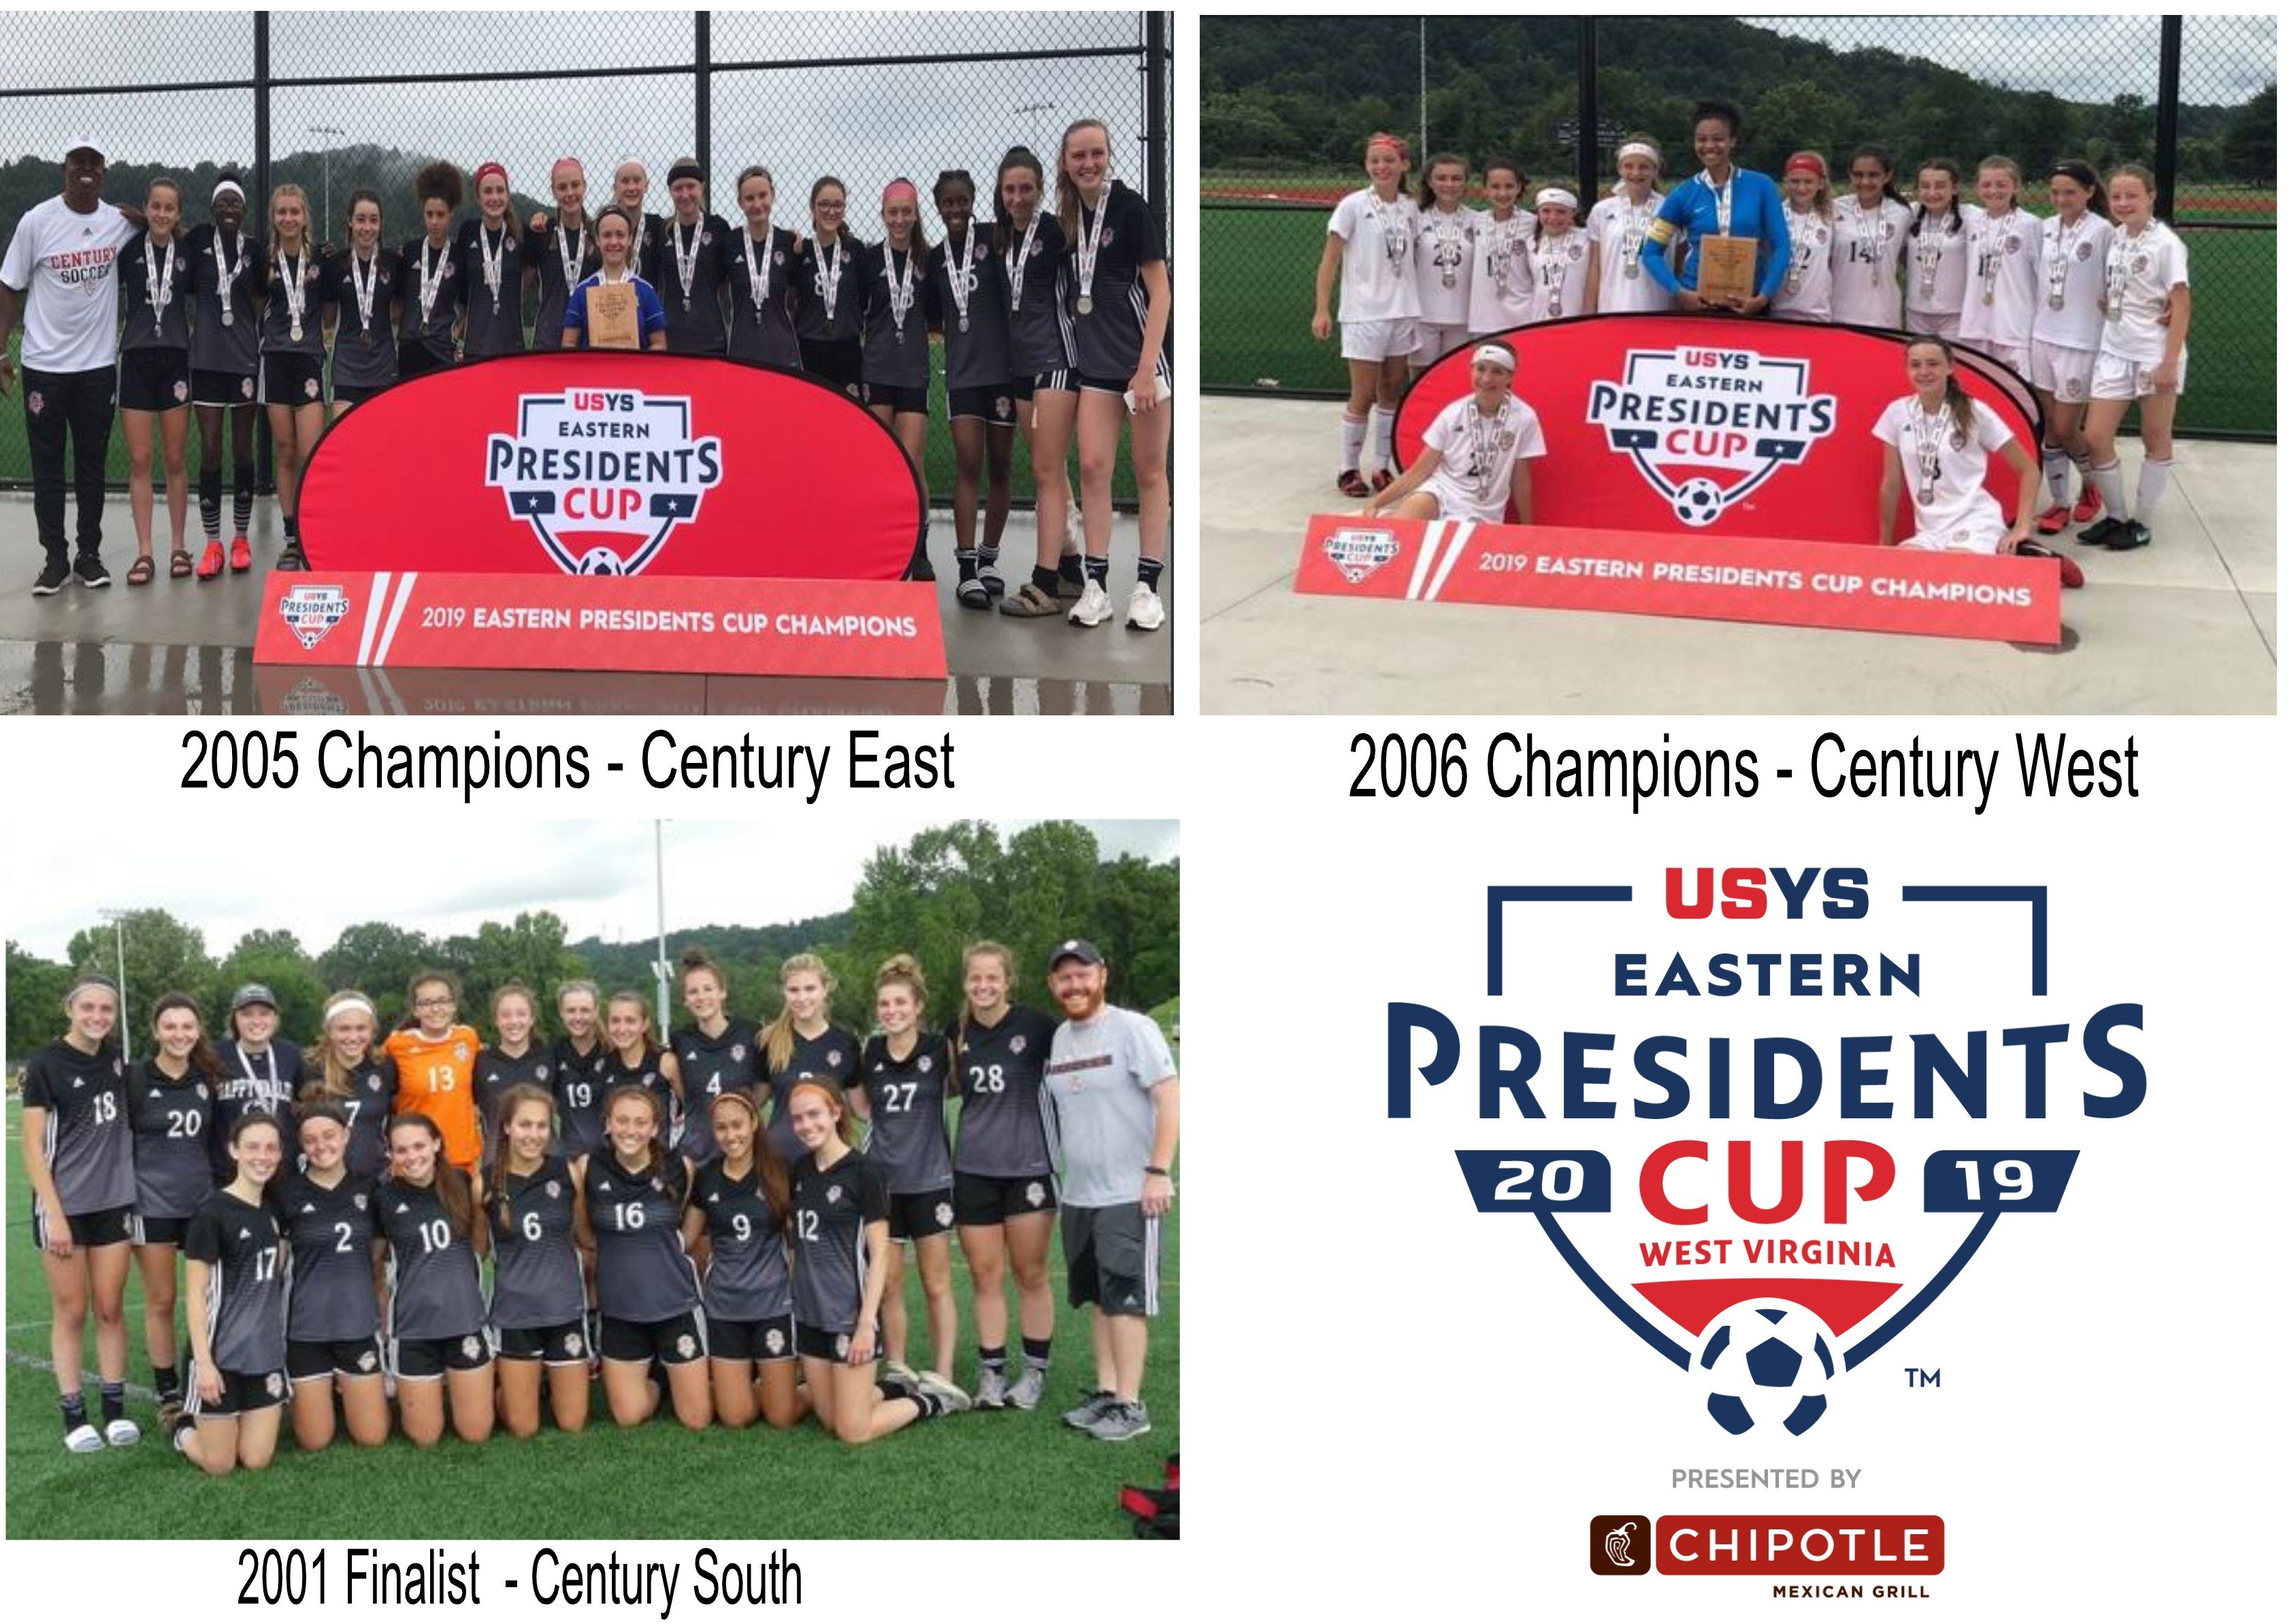 2019 PRESIDENTS CUP REGIONAL CHAMPIONSHIP